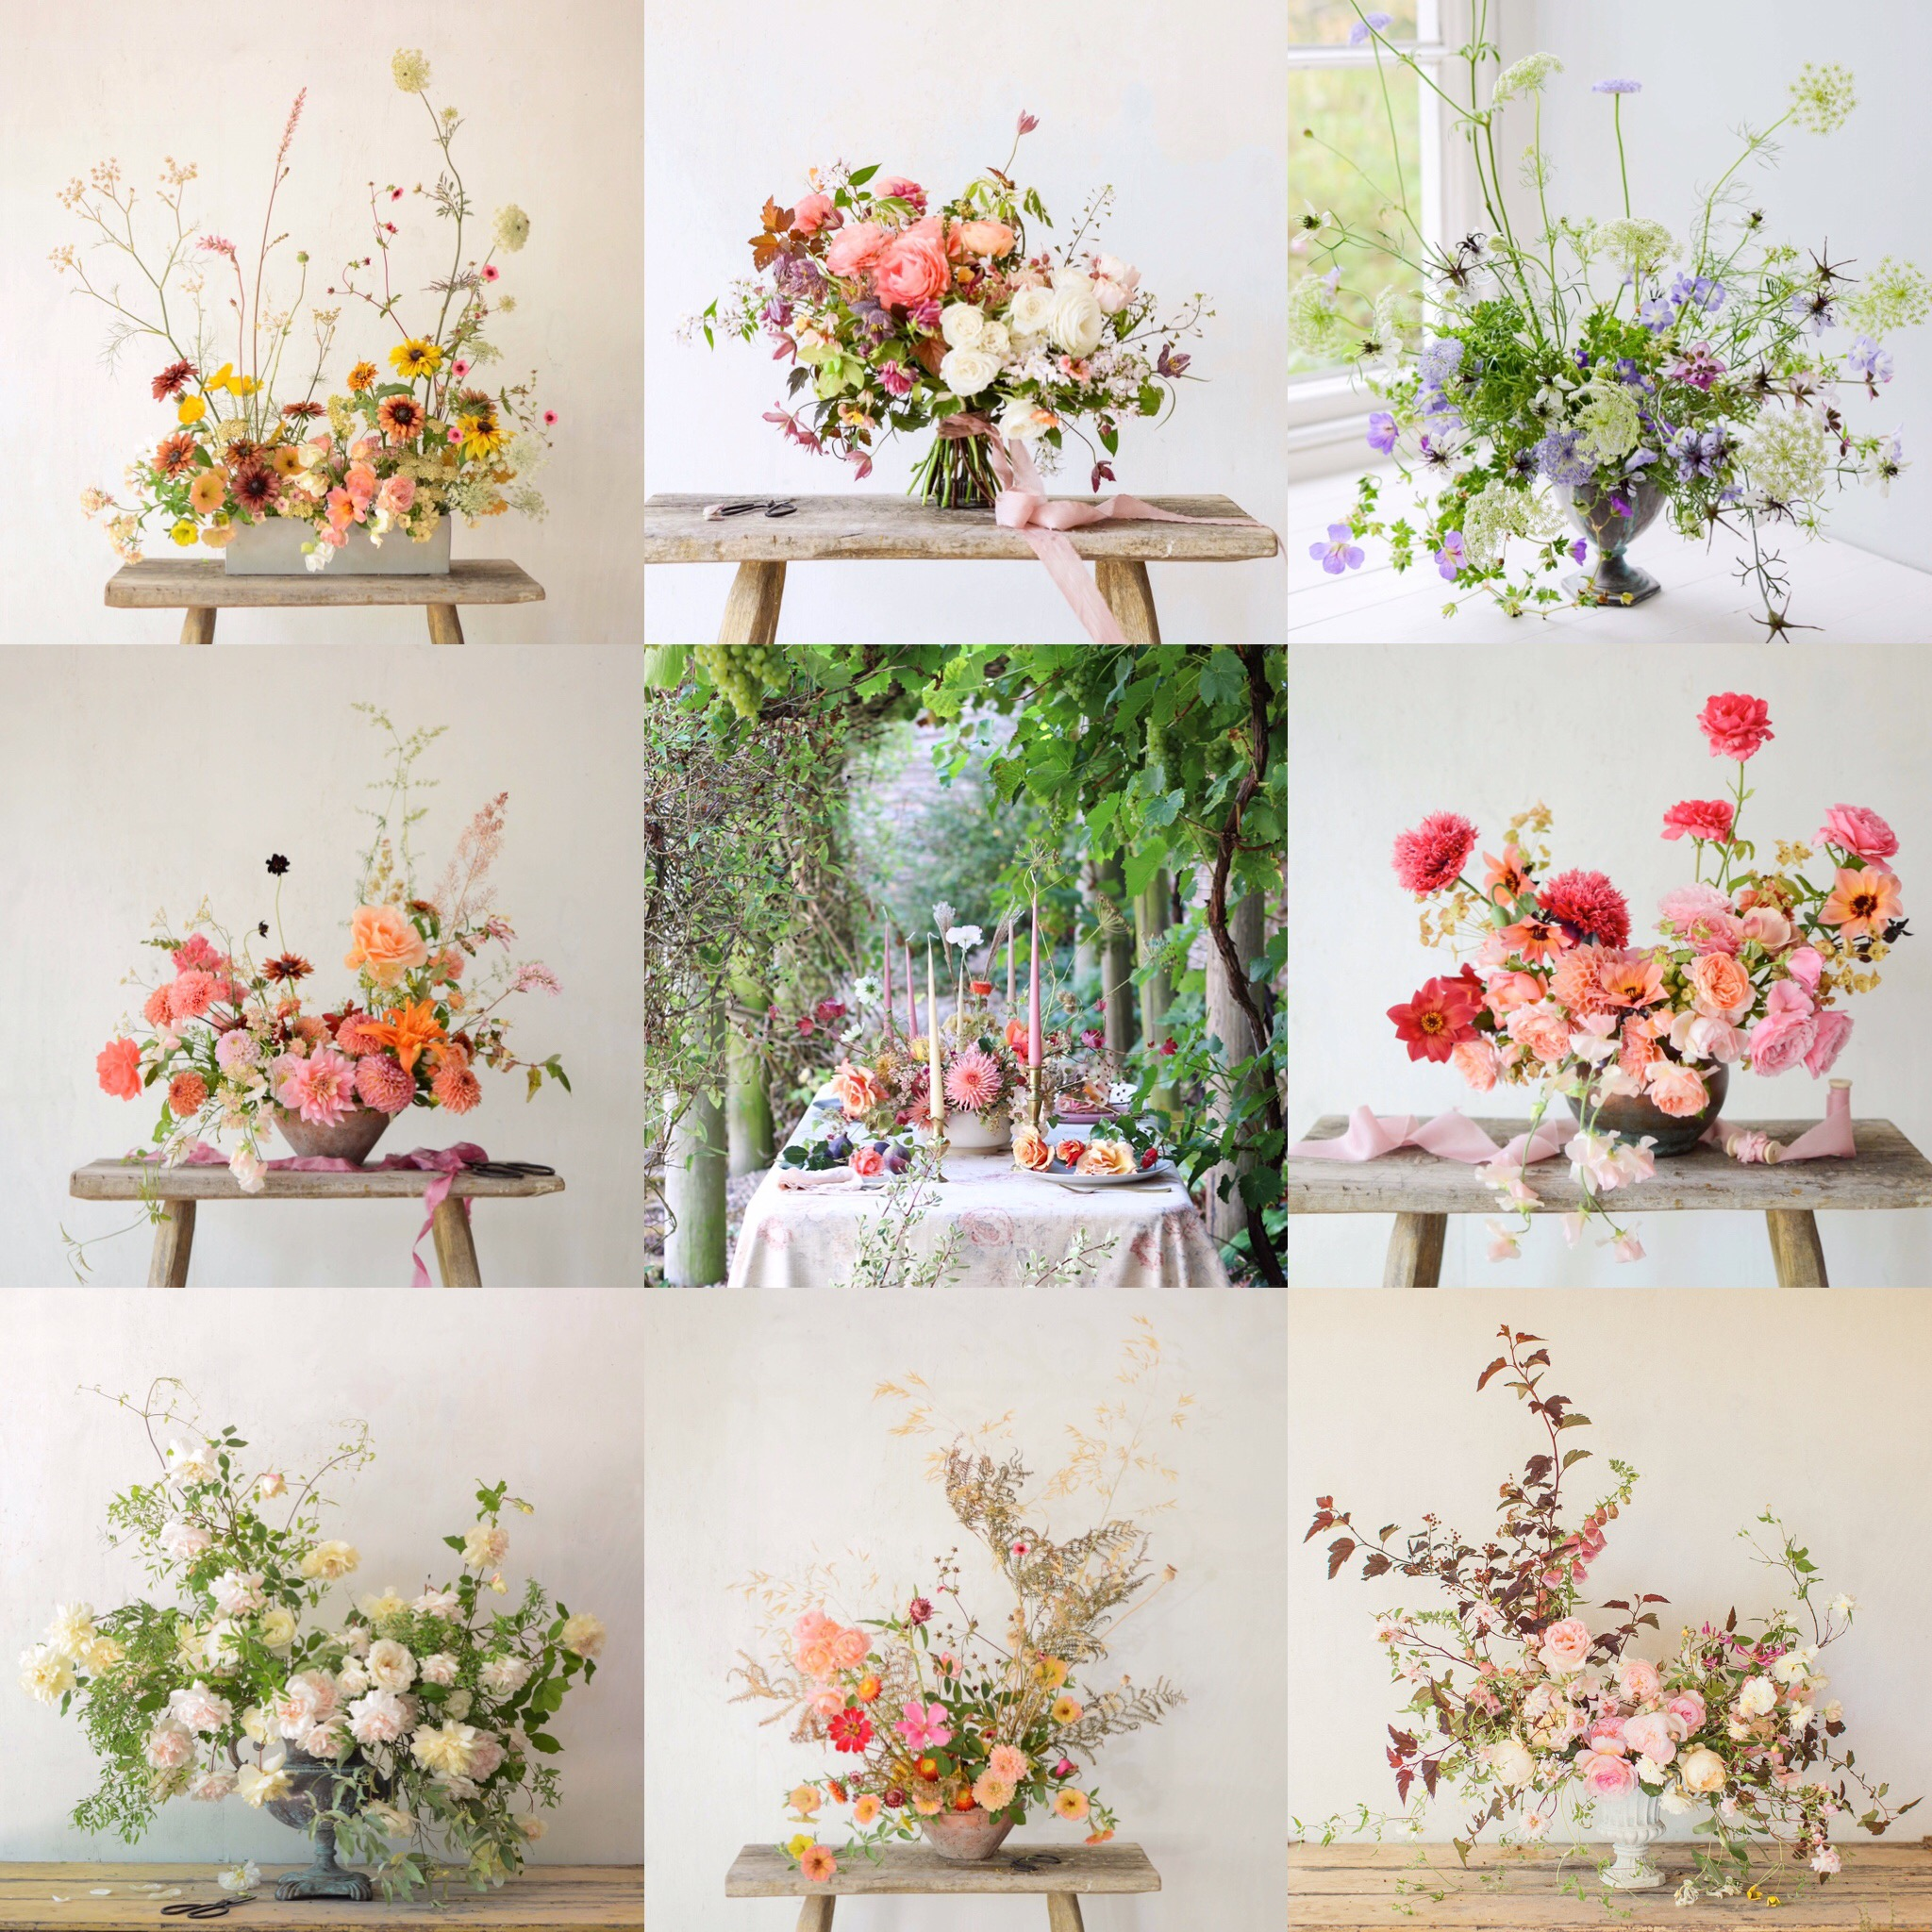 Best 9 2018 - Moss & Stone Floral Design